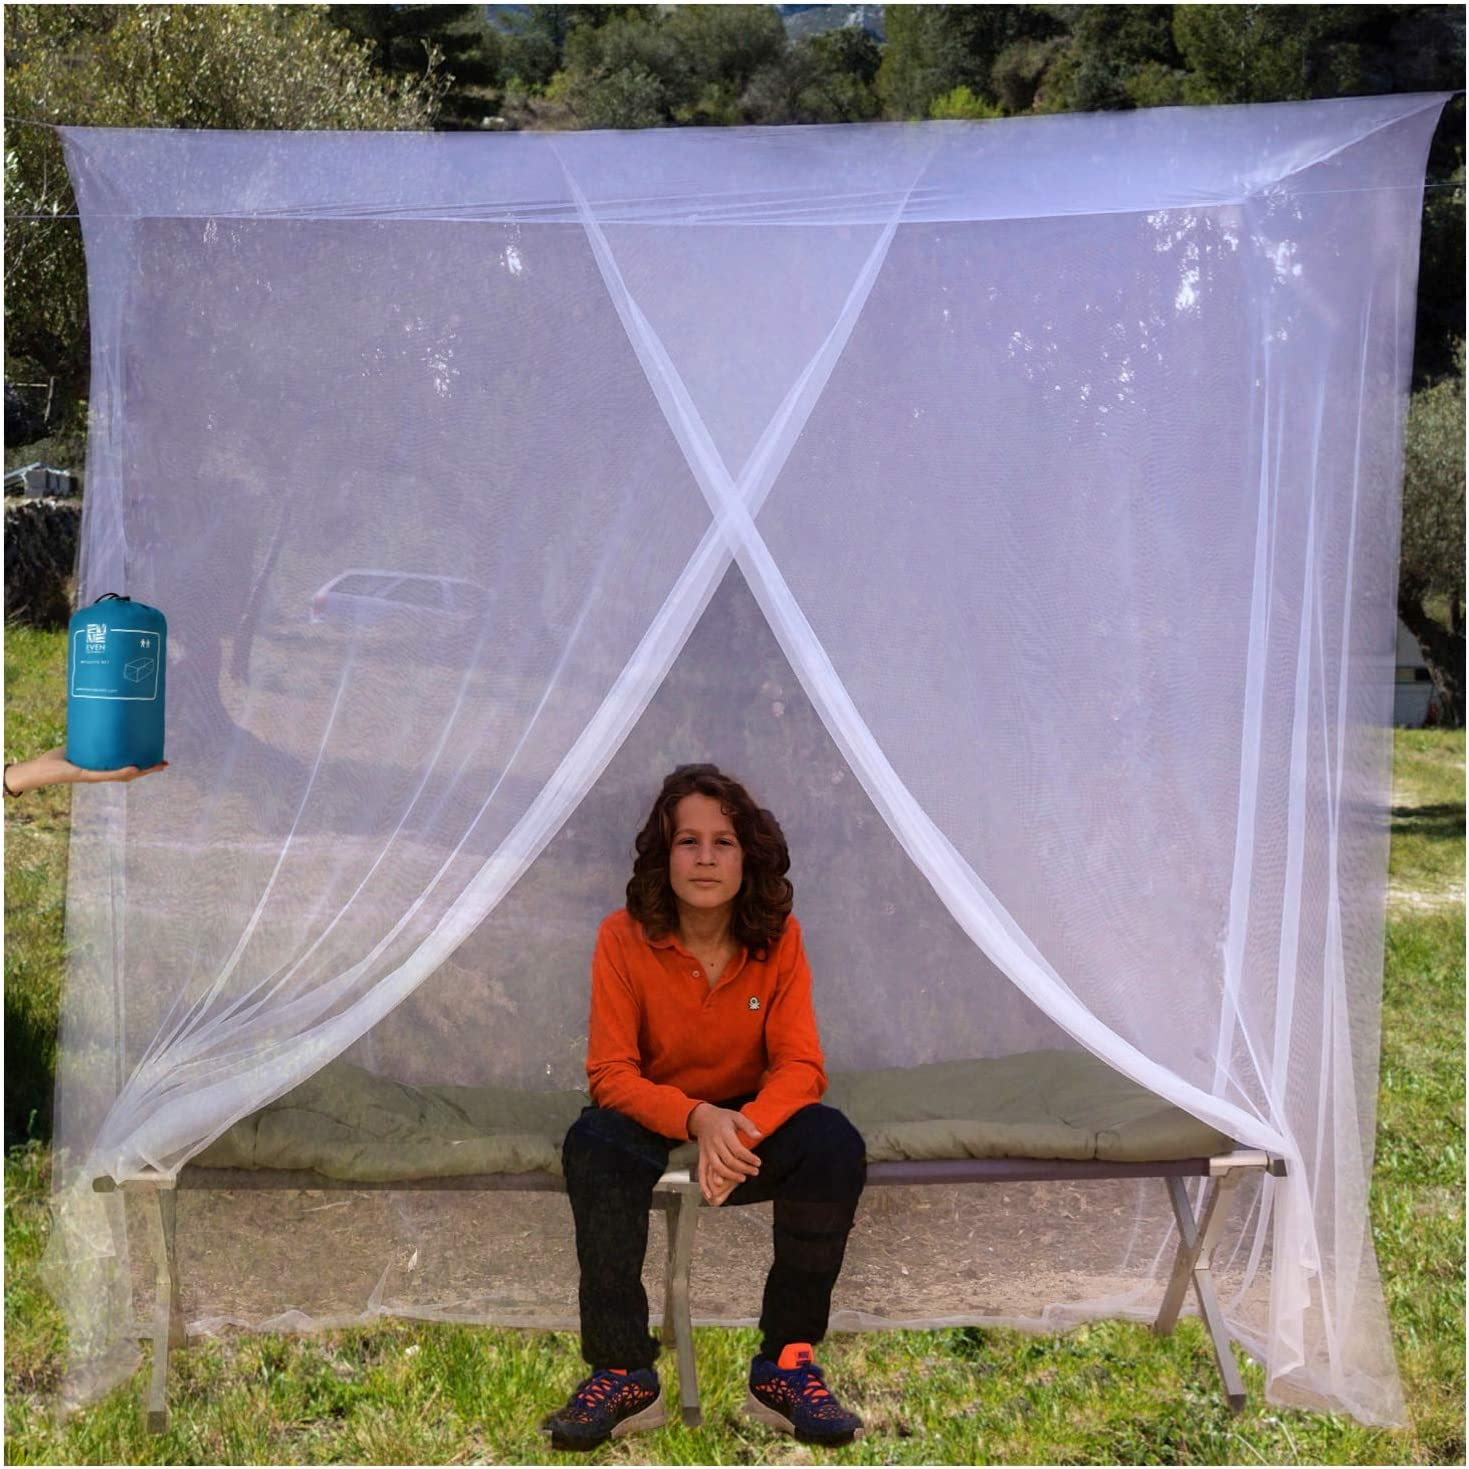 Hanging Kit Large Tent Double to King Size Storage Bag Easy to Install Camping Screen House Finest Holes Mesh 380 2 Entries Square Netting Curtain EVEN Naturals MOSQUITO NET for Bed Canopy